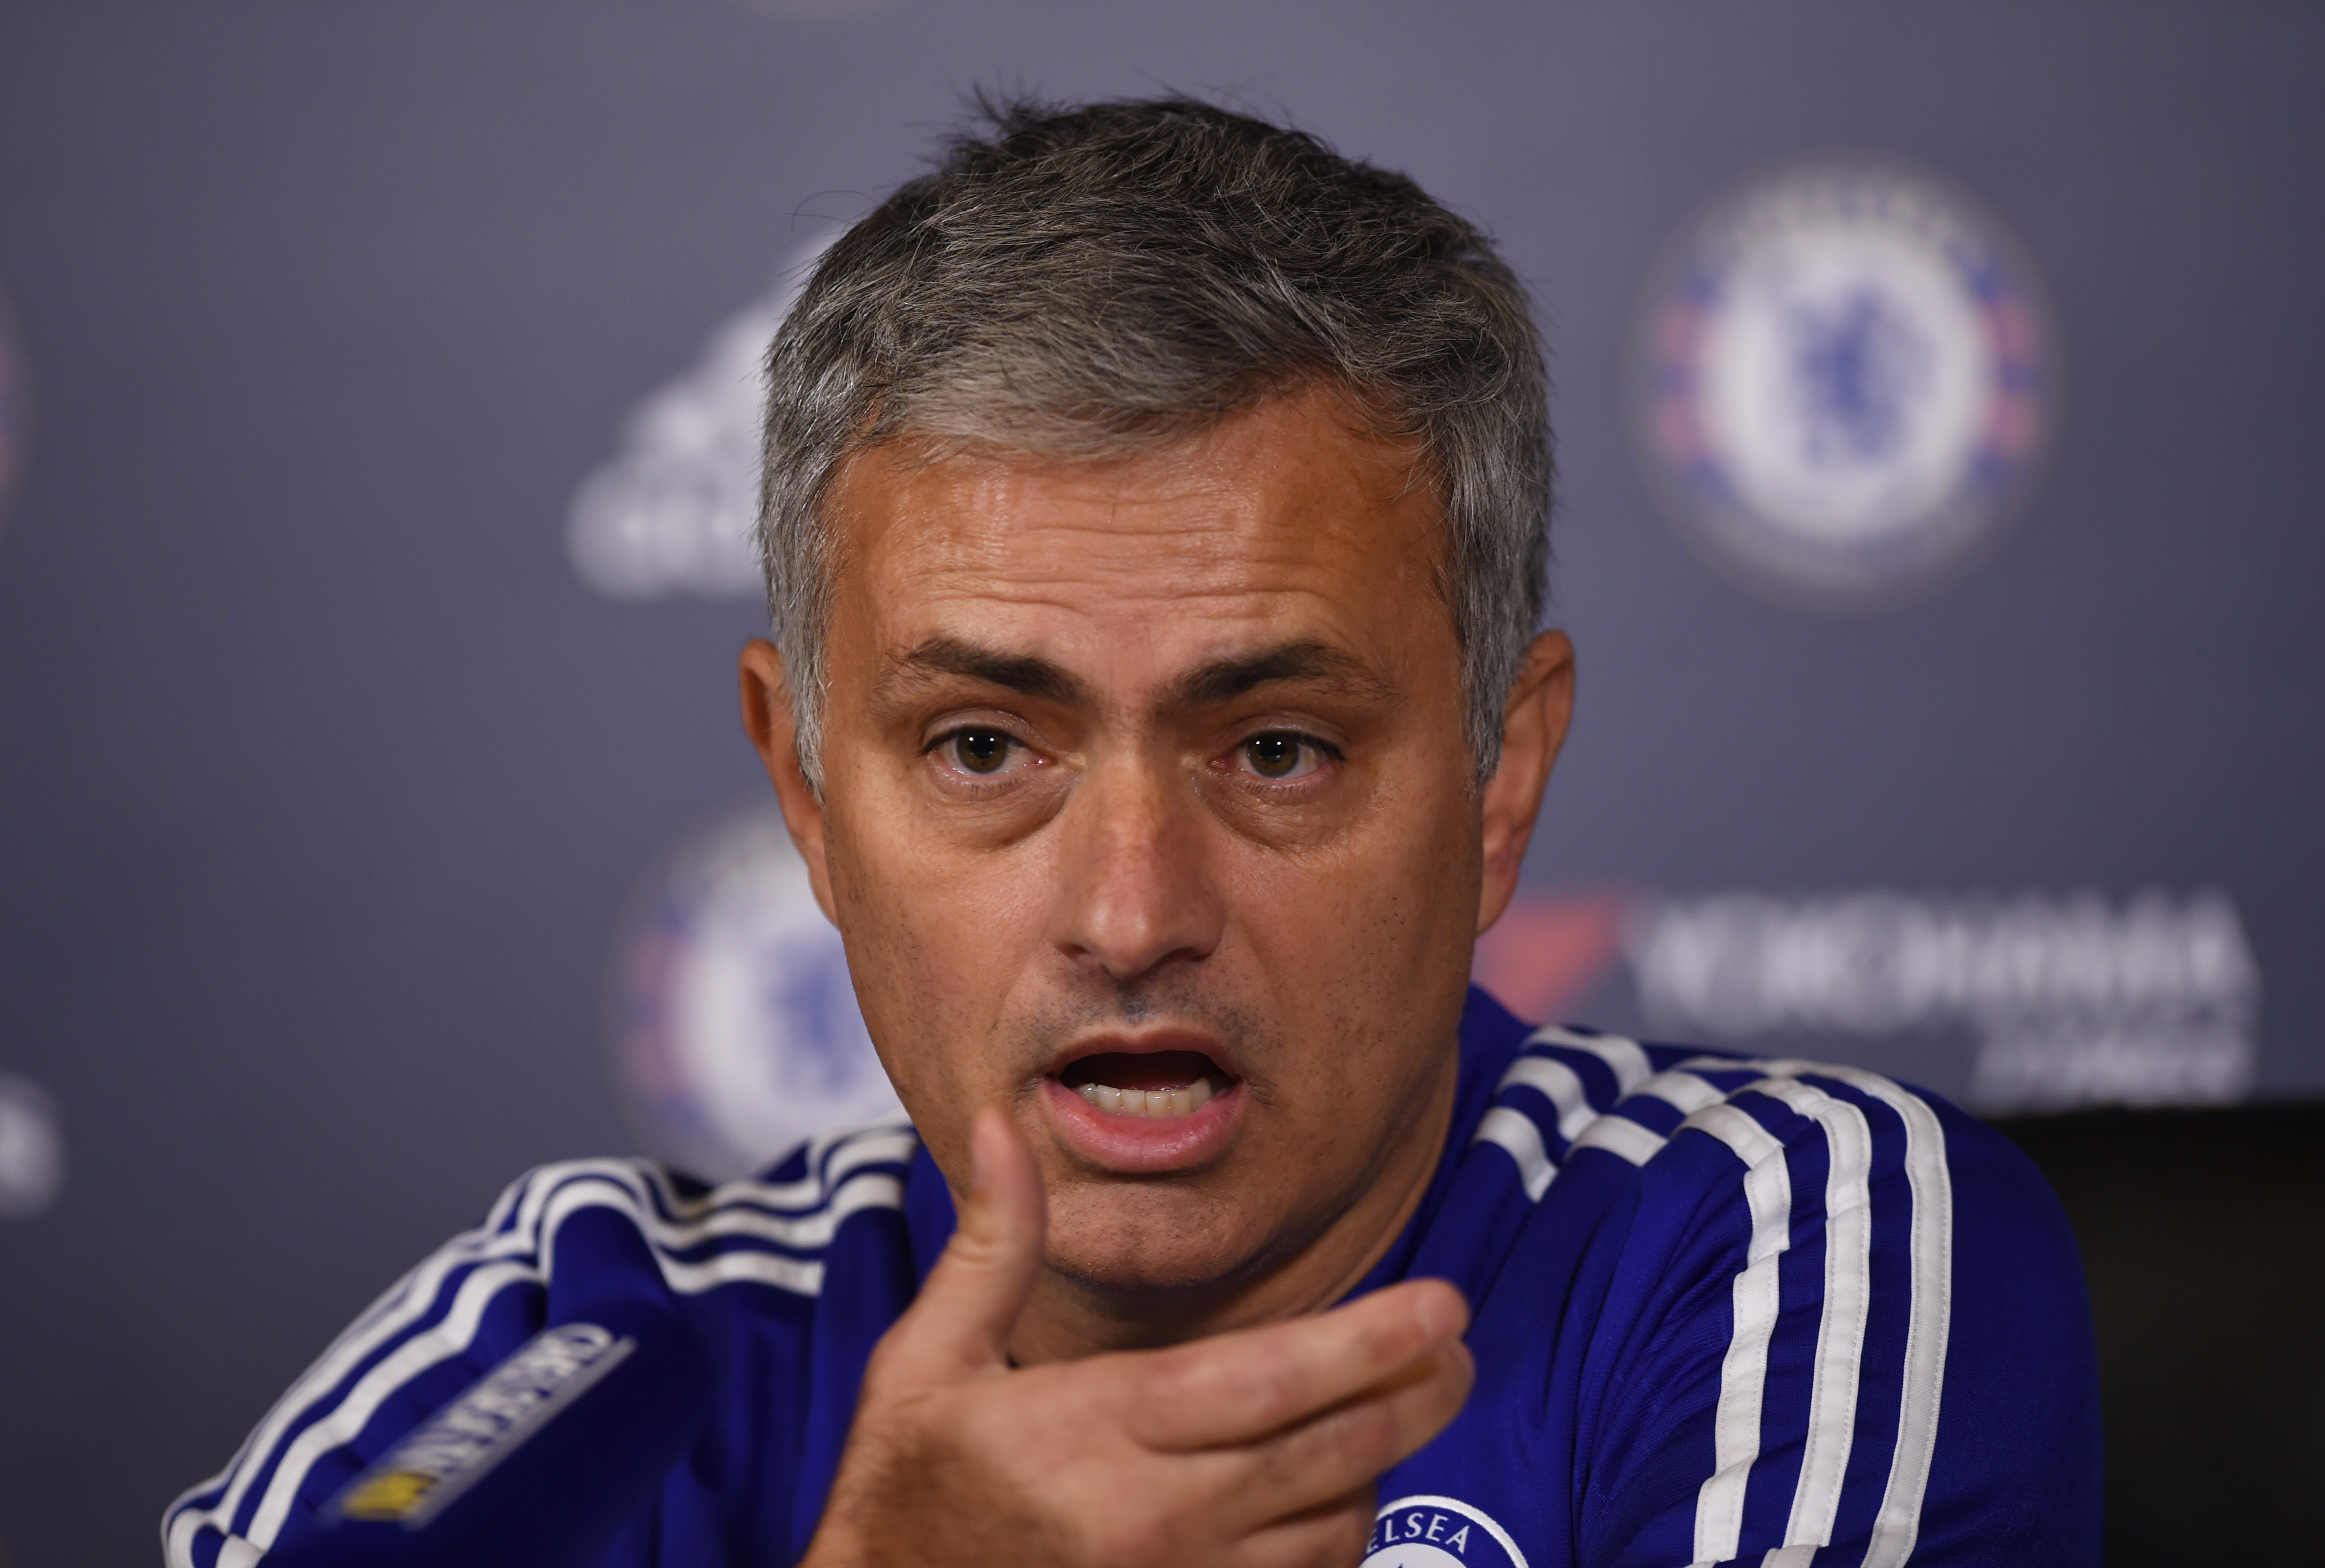 Chelsea Manager Jose Mourinho during press conference at Chelsea Training Ground on December 11, 2015. Photo: Reuters